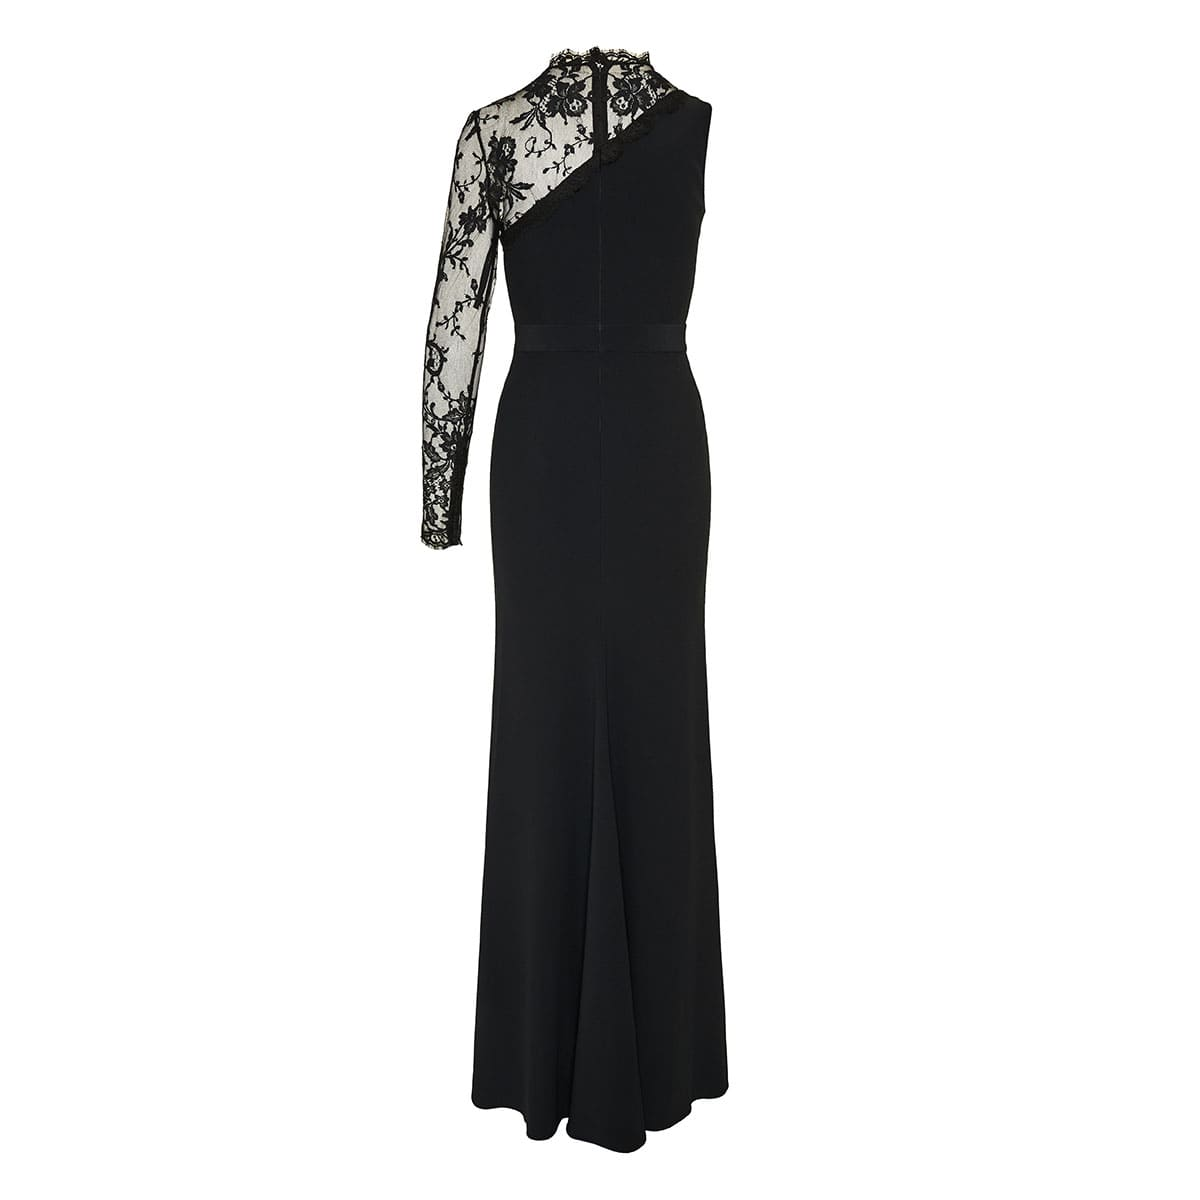 One-sleeve lace-paneled gown